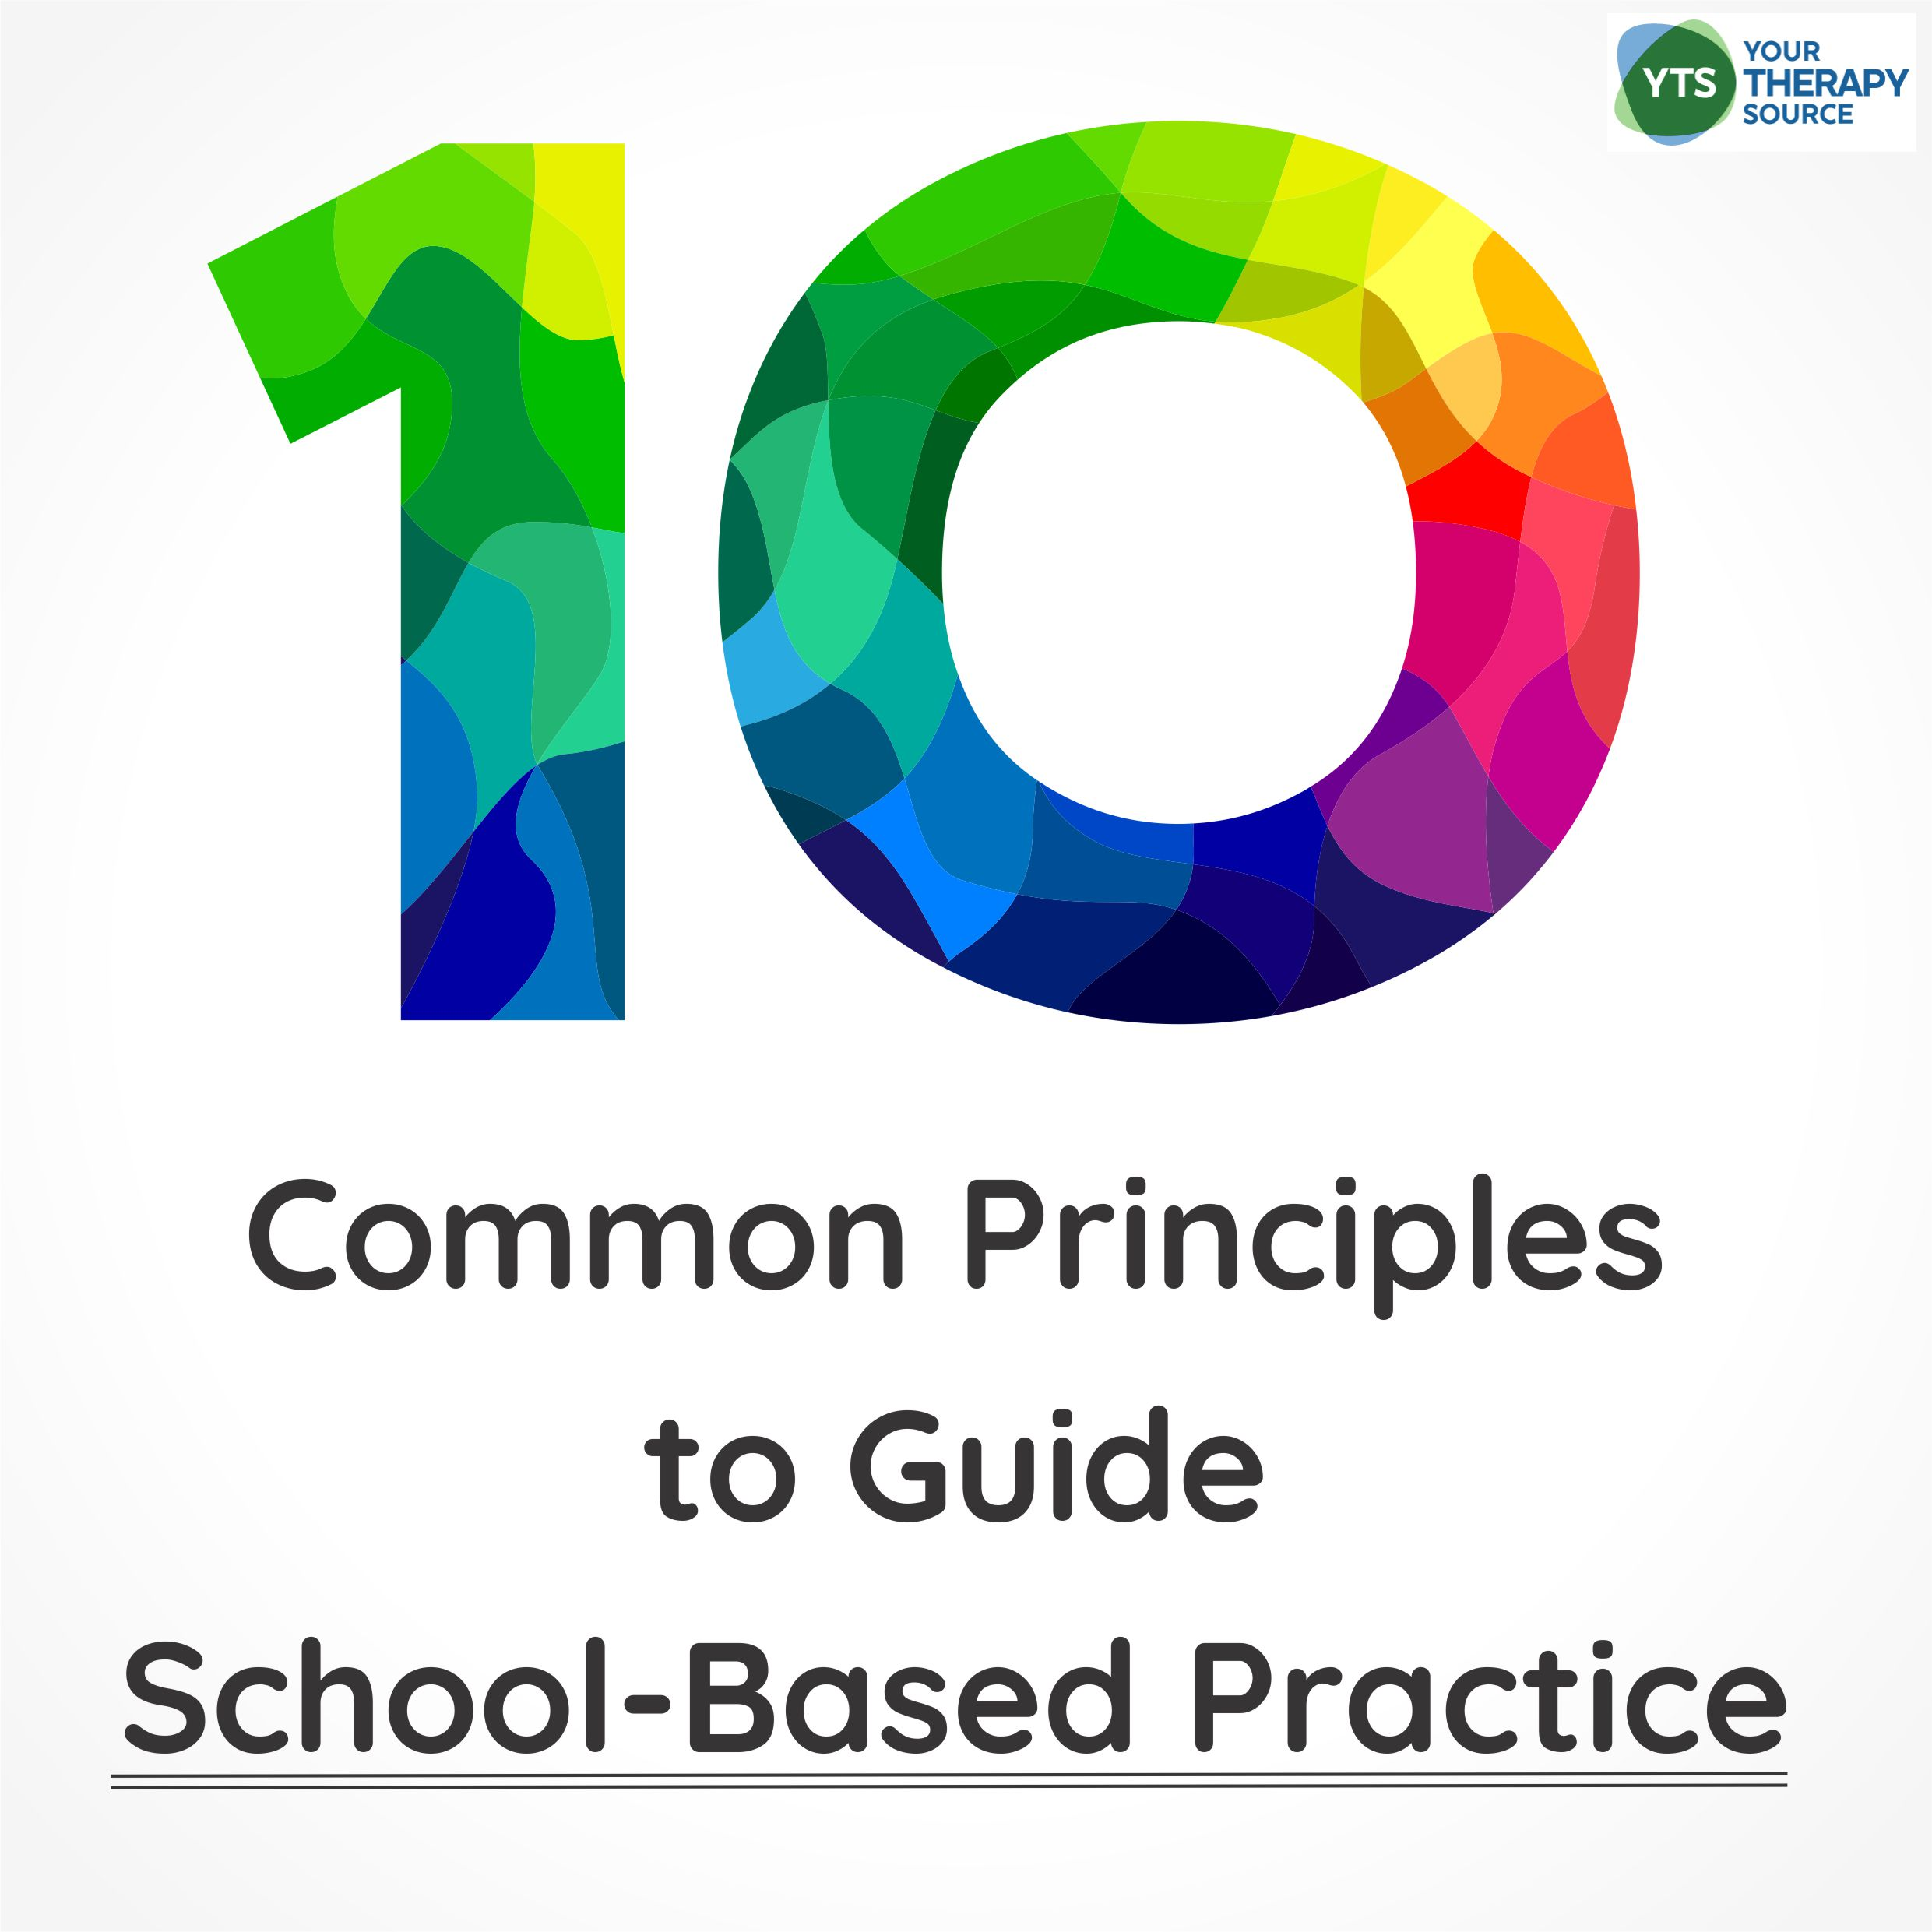 Recently, Child: Care, Health and Development published a review to look closely at the current evidence and determined 10 common principles to guide school-based practice and offer useful strategies for implementation of those principles in the school setting.